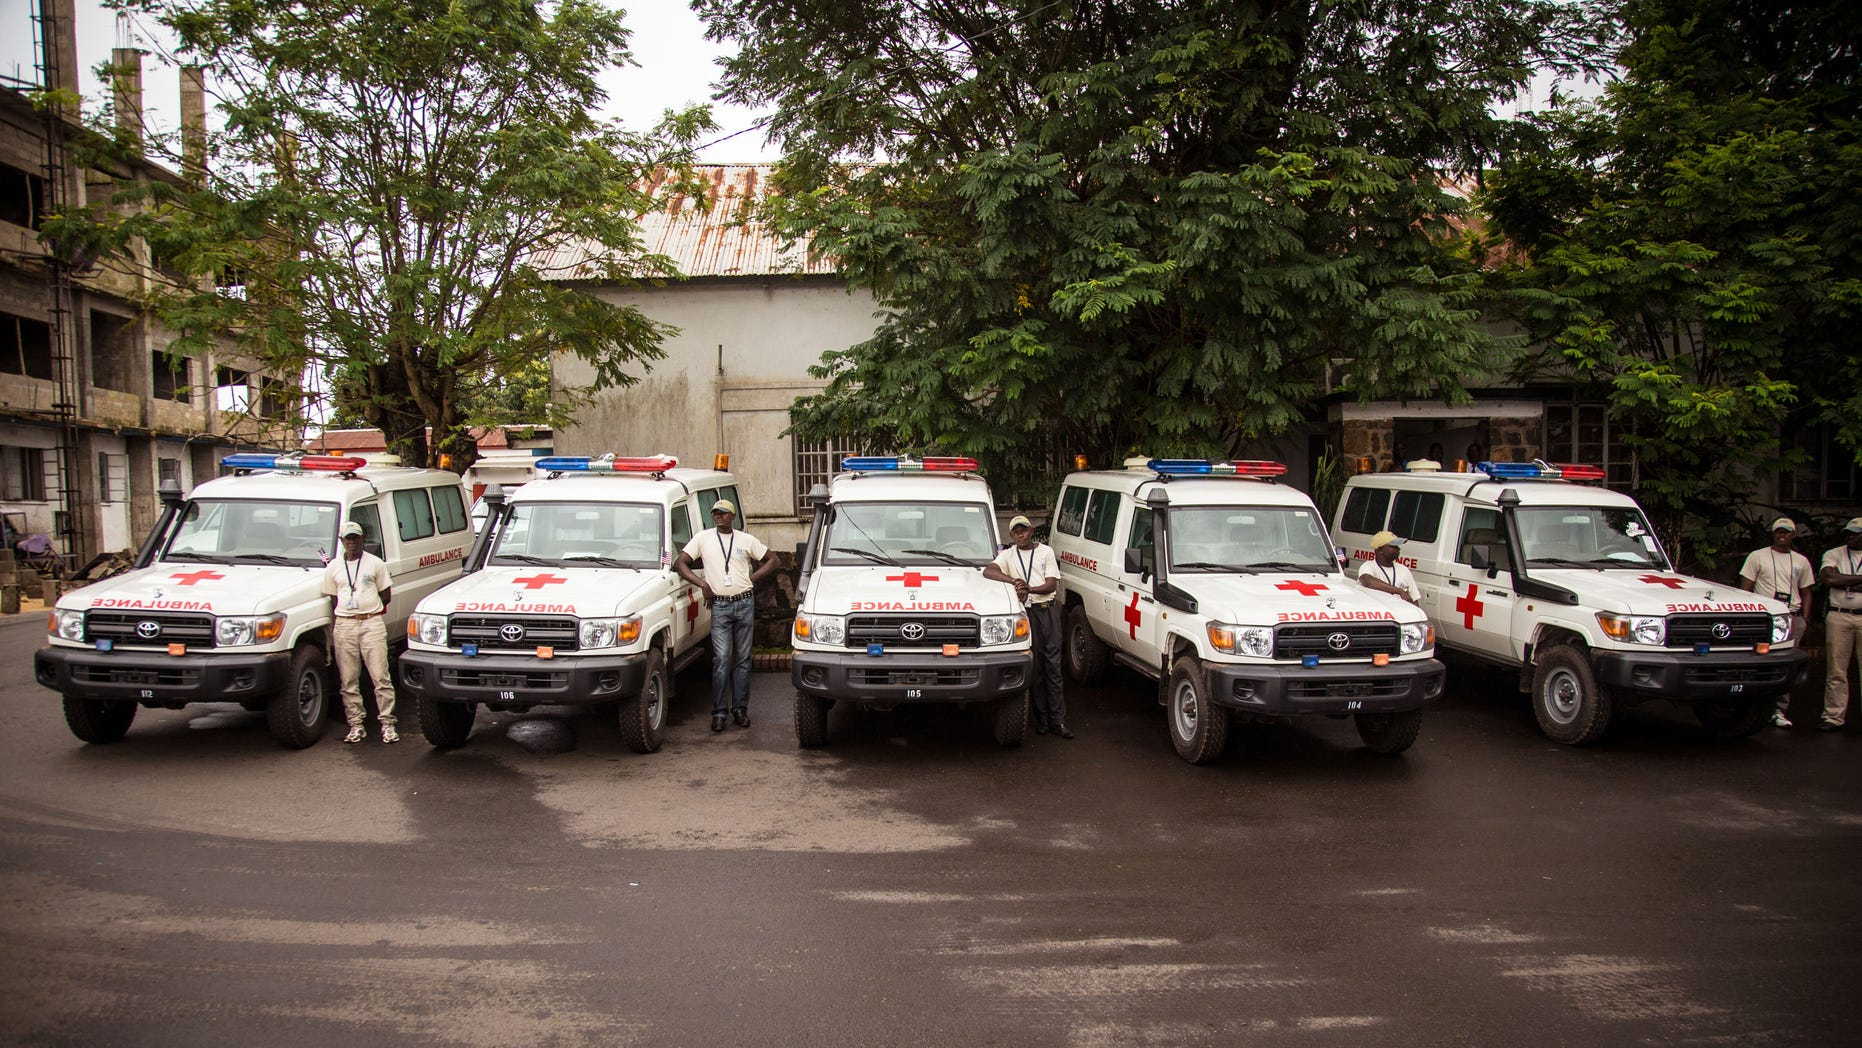 Sept. 10, 2014: Five ambulances that were donated by the U.S. to help combat the Ebola virus are lined up following a ceremony attended by Sierra Leone's president Ernest Bai Koroma, in Freetown, Sierra Leone.